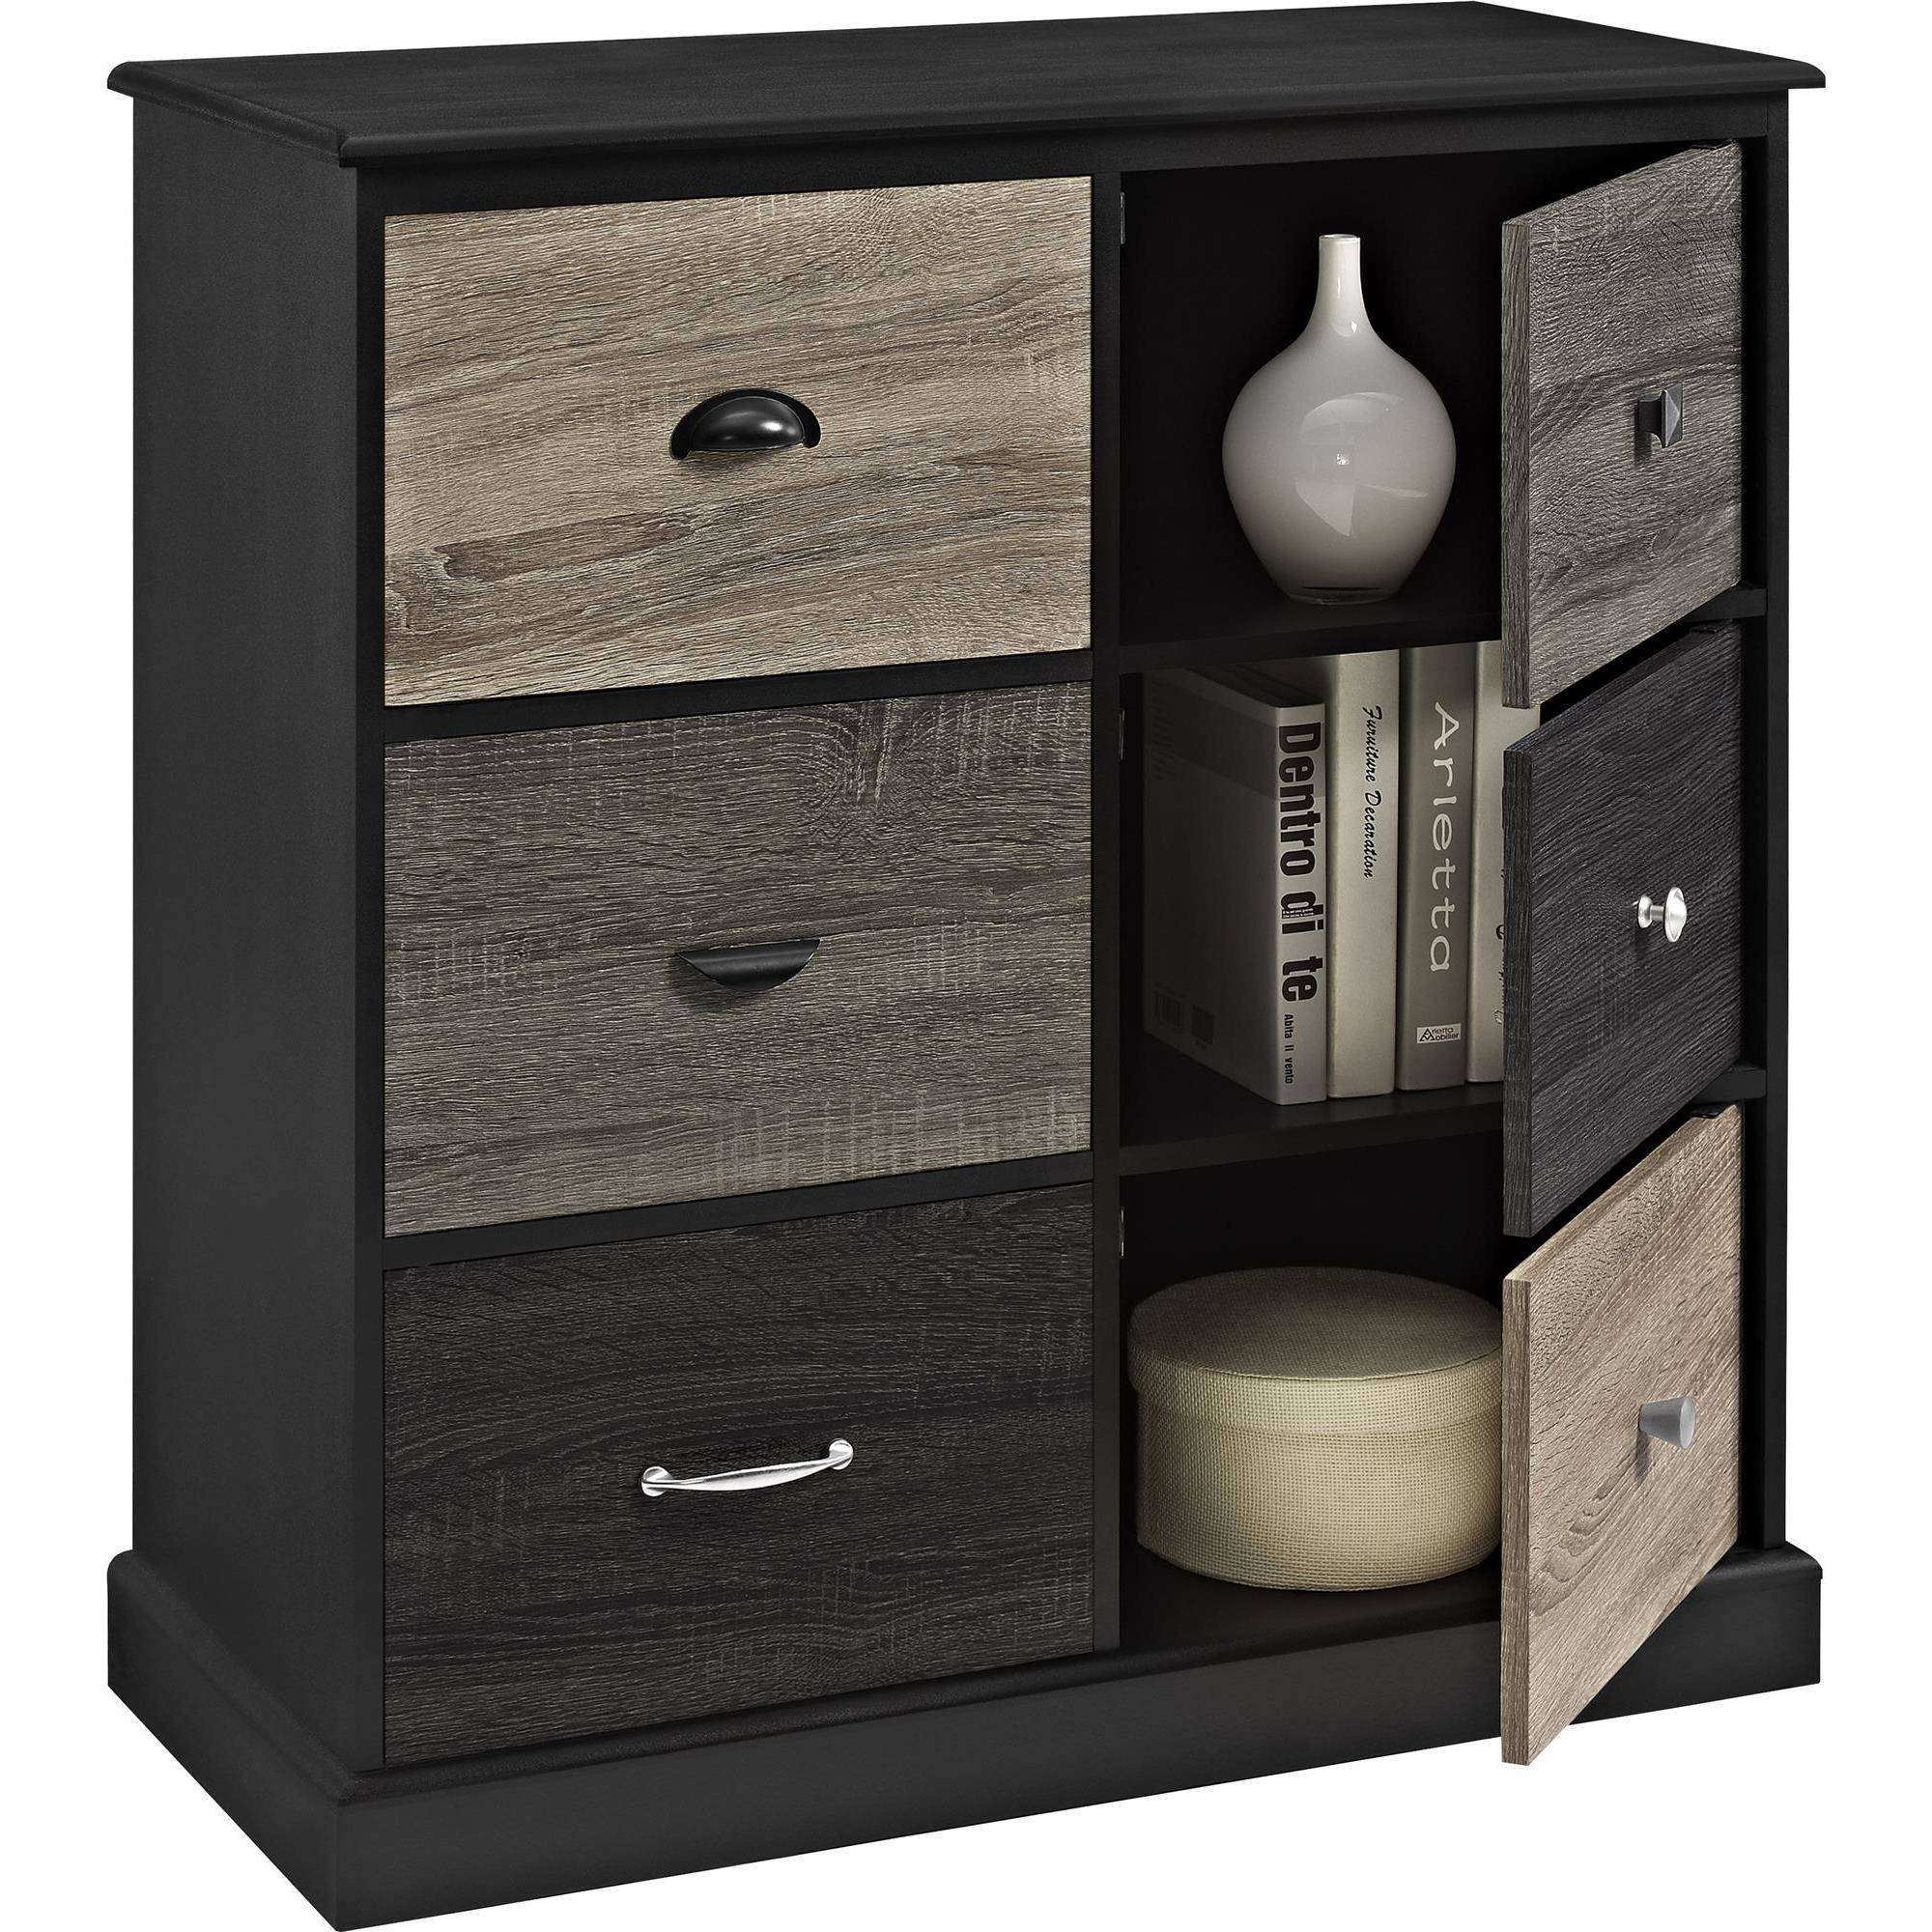 home naples drawers in storage with h d b x drawer distressed grey and w linen n bathroom collection cabinets bath decorators depot the doors cabinet